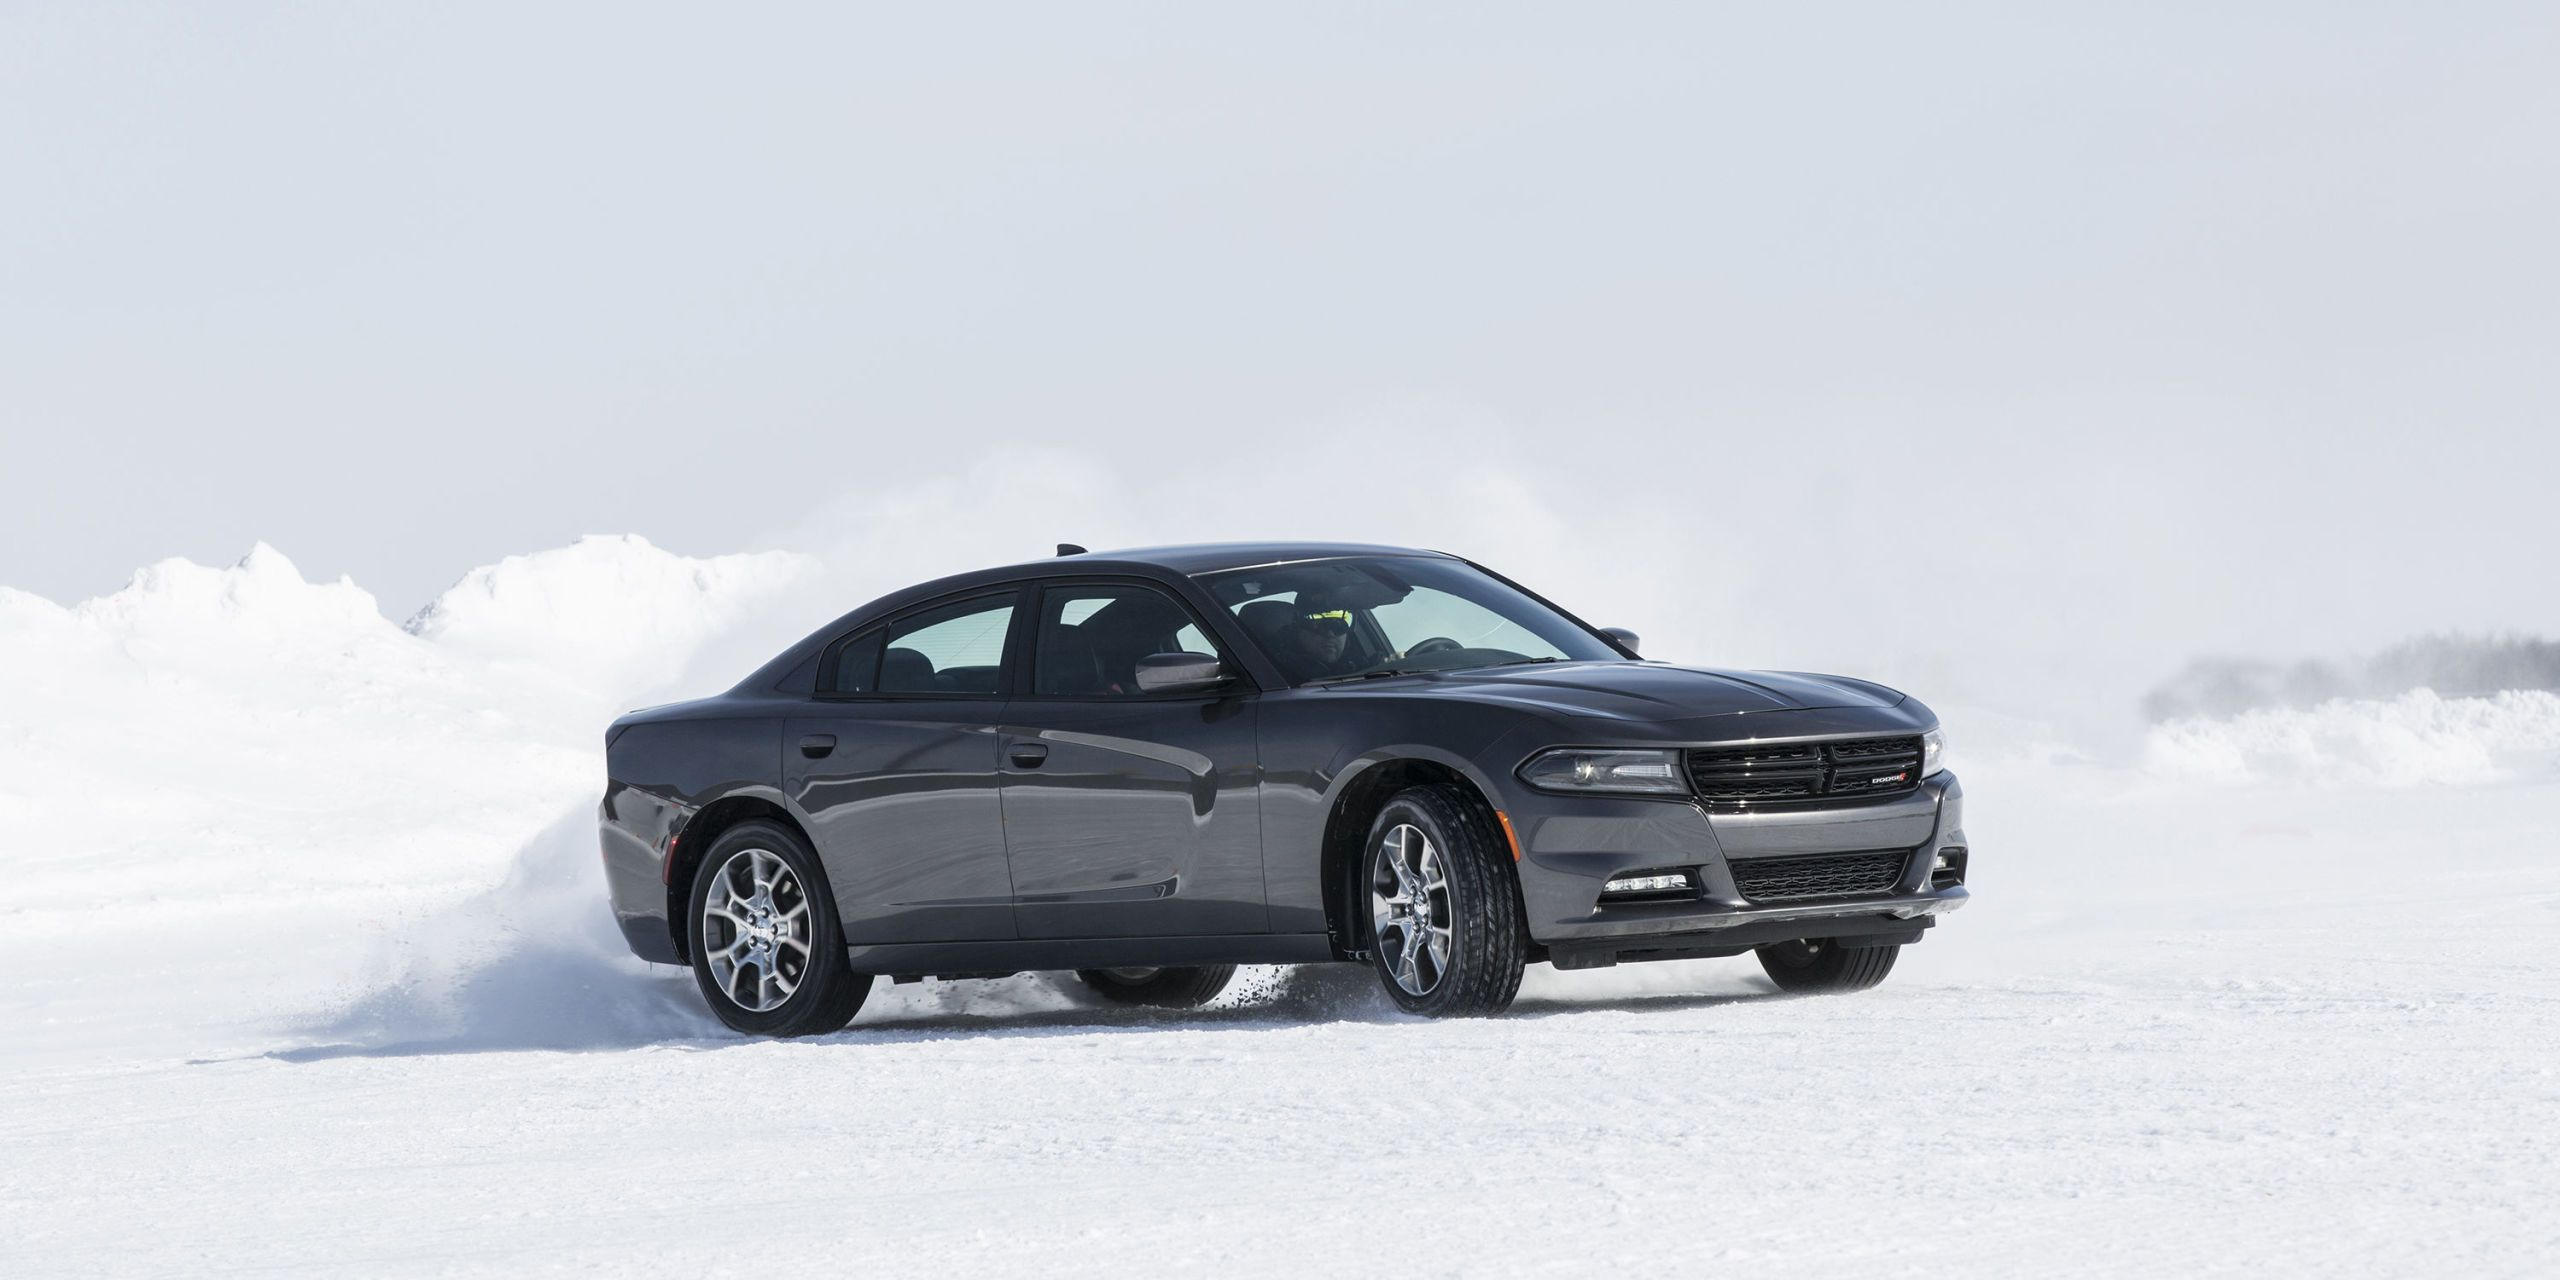 How to Drive in Winter: 12 Hacks from the Pros to Master Travel in Snow and Ice